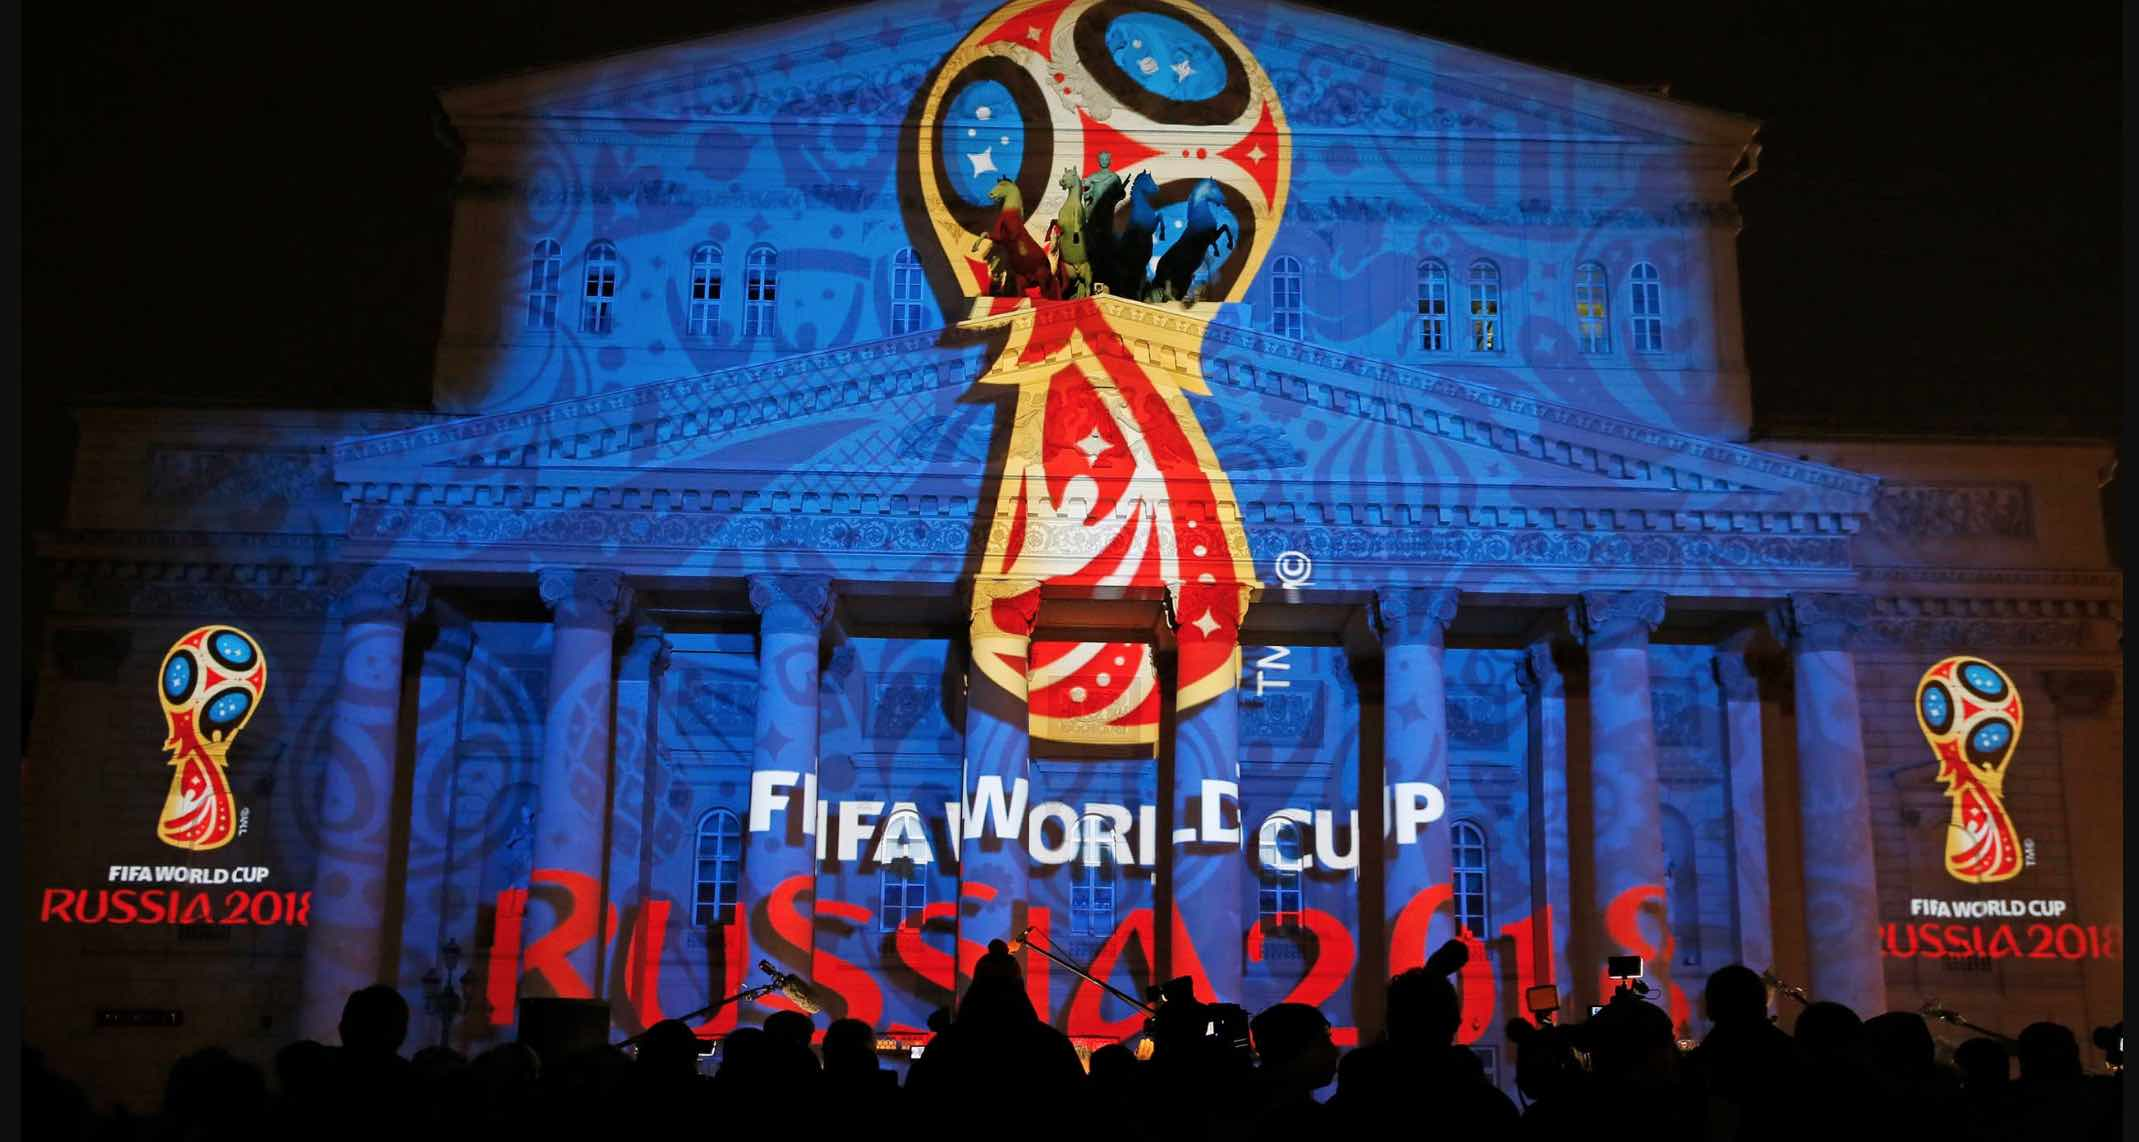 watch Russia 2018 FIFA World Cup free